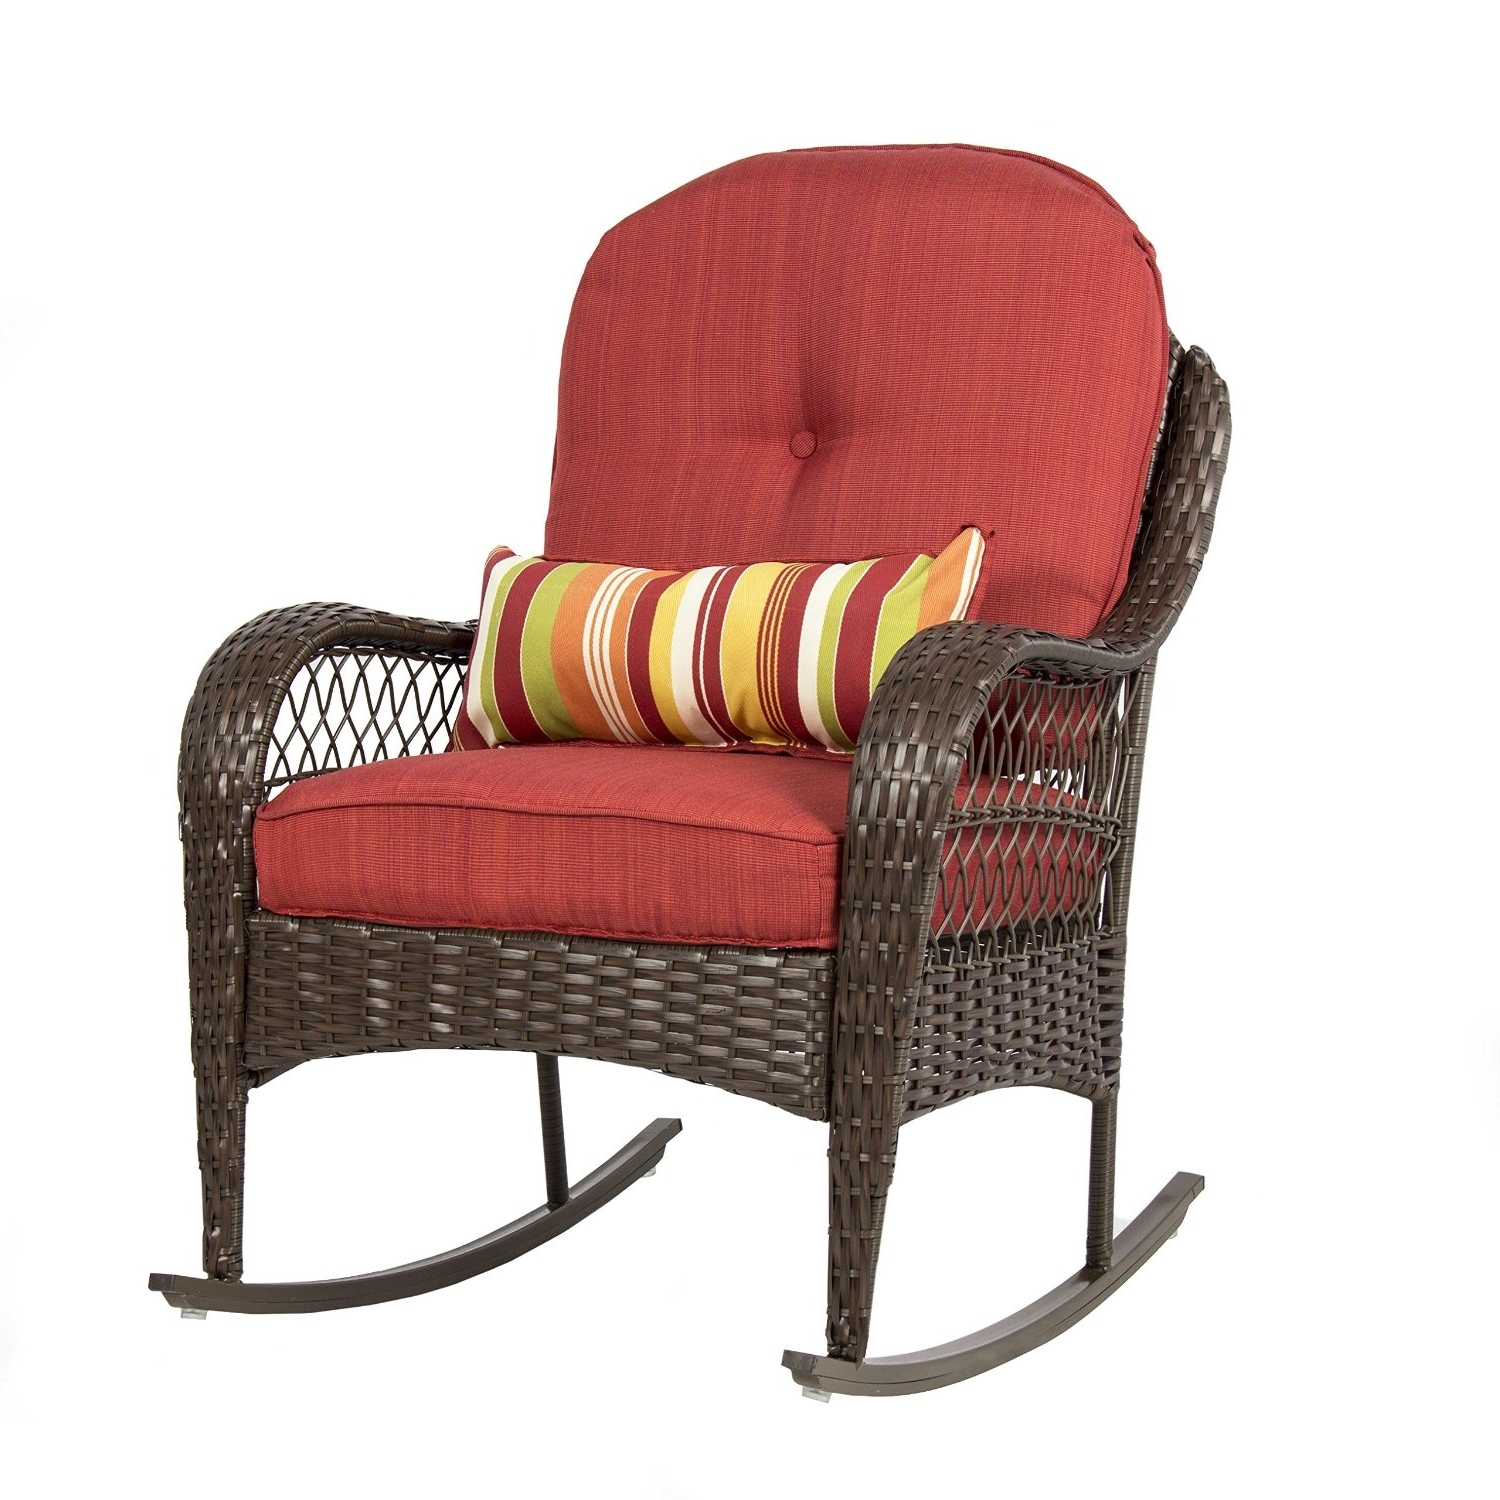 Best Choice Products Wicker Rocking Chair Within Famous Outdoor Wicker Rocking Chairs With Cushions (View 10 of 20)